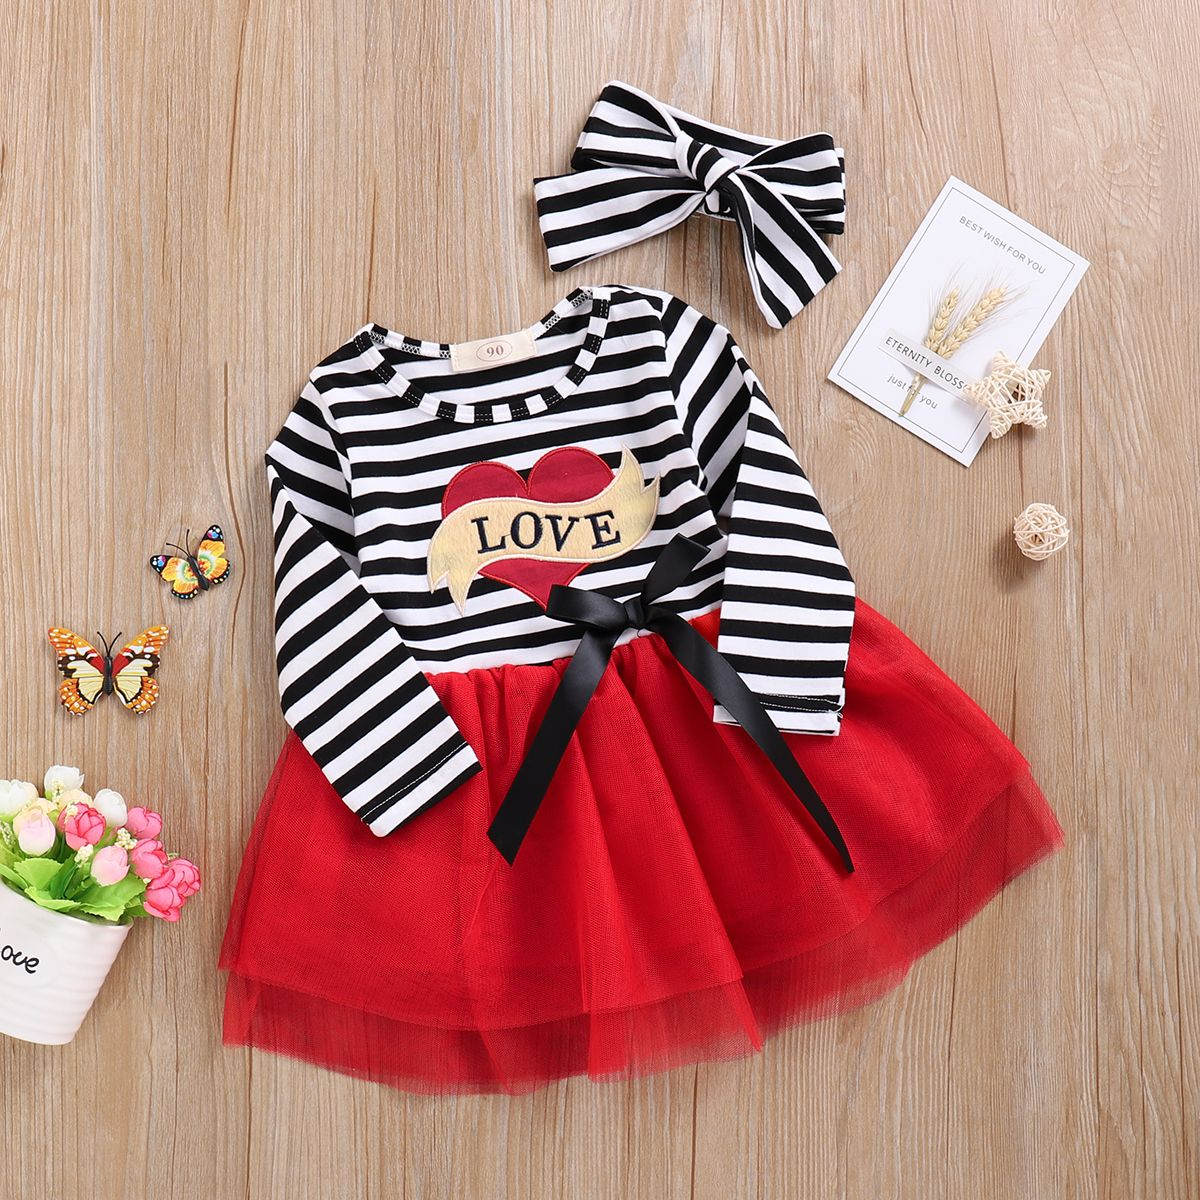 Toddler Girls Valentines Day Outfits Baby Love Print Striped Long Sleeve Dress Tutu Skirt Playwear with Headband